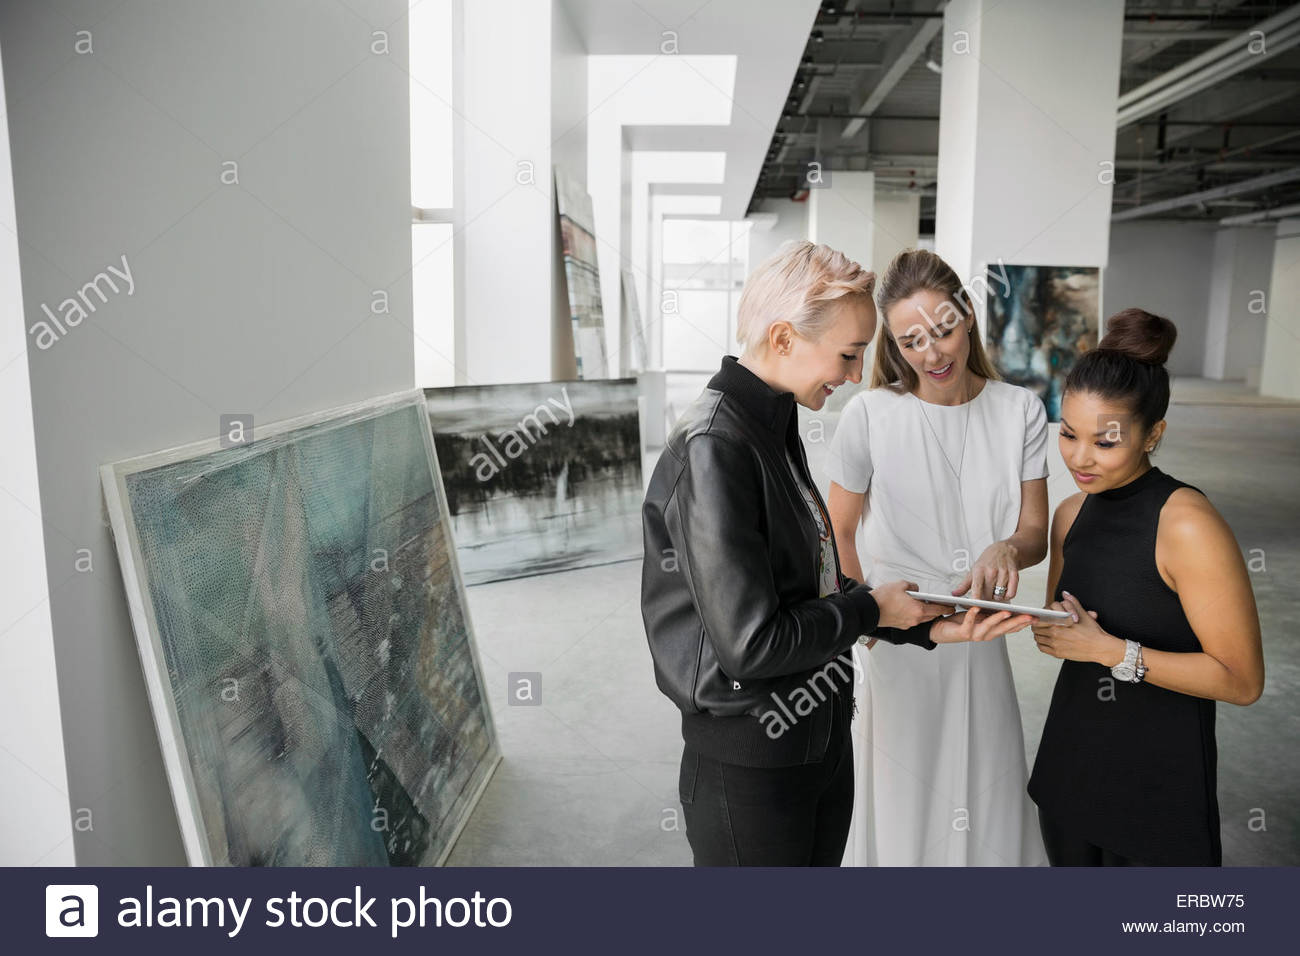 Artist and art dealers using digital tablet gallery - Stock Image